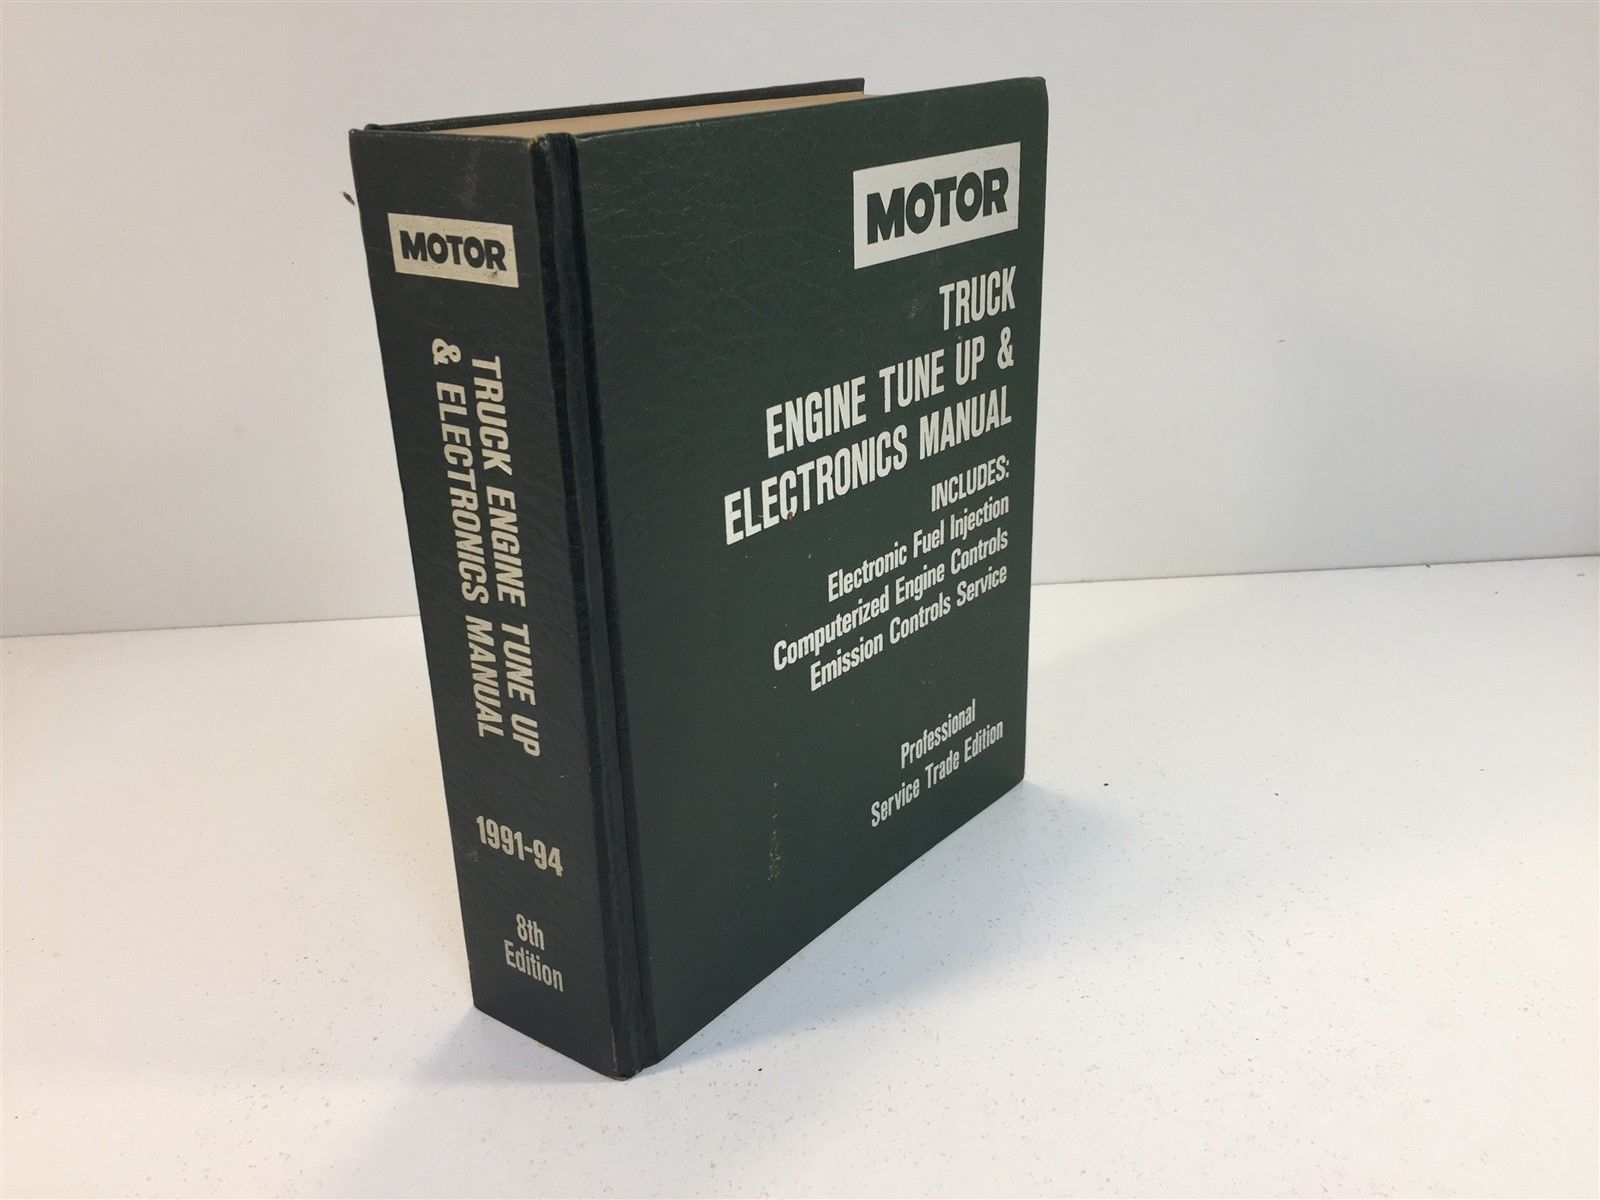 1991-94 Motor Truck Engine Tune Up & Electronics Manual 8th Edition